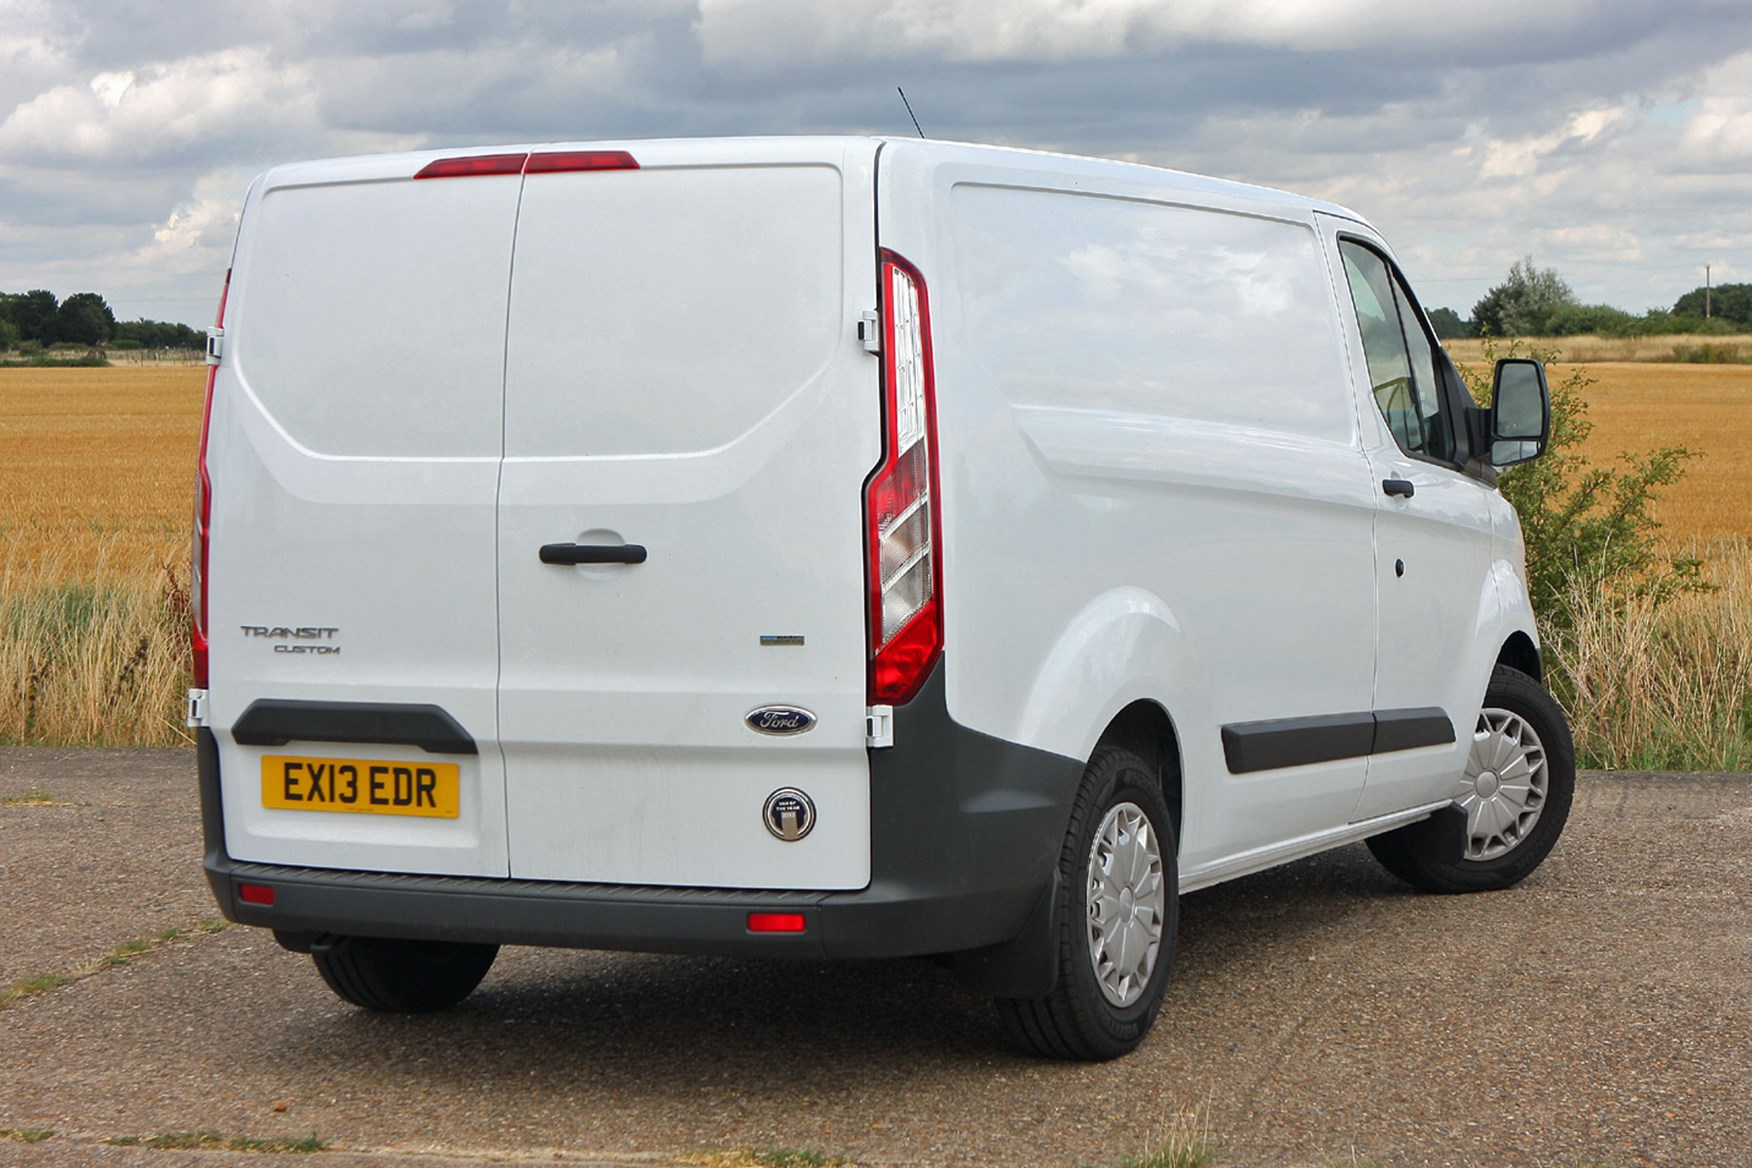 Ford Transit Custom Sport Euro 5 Econetic rear view